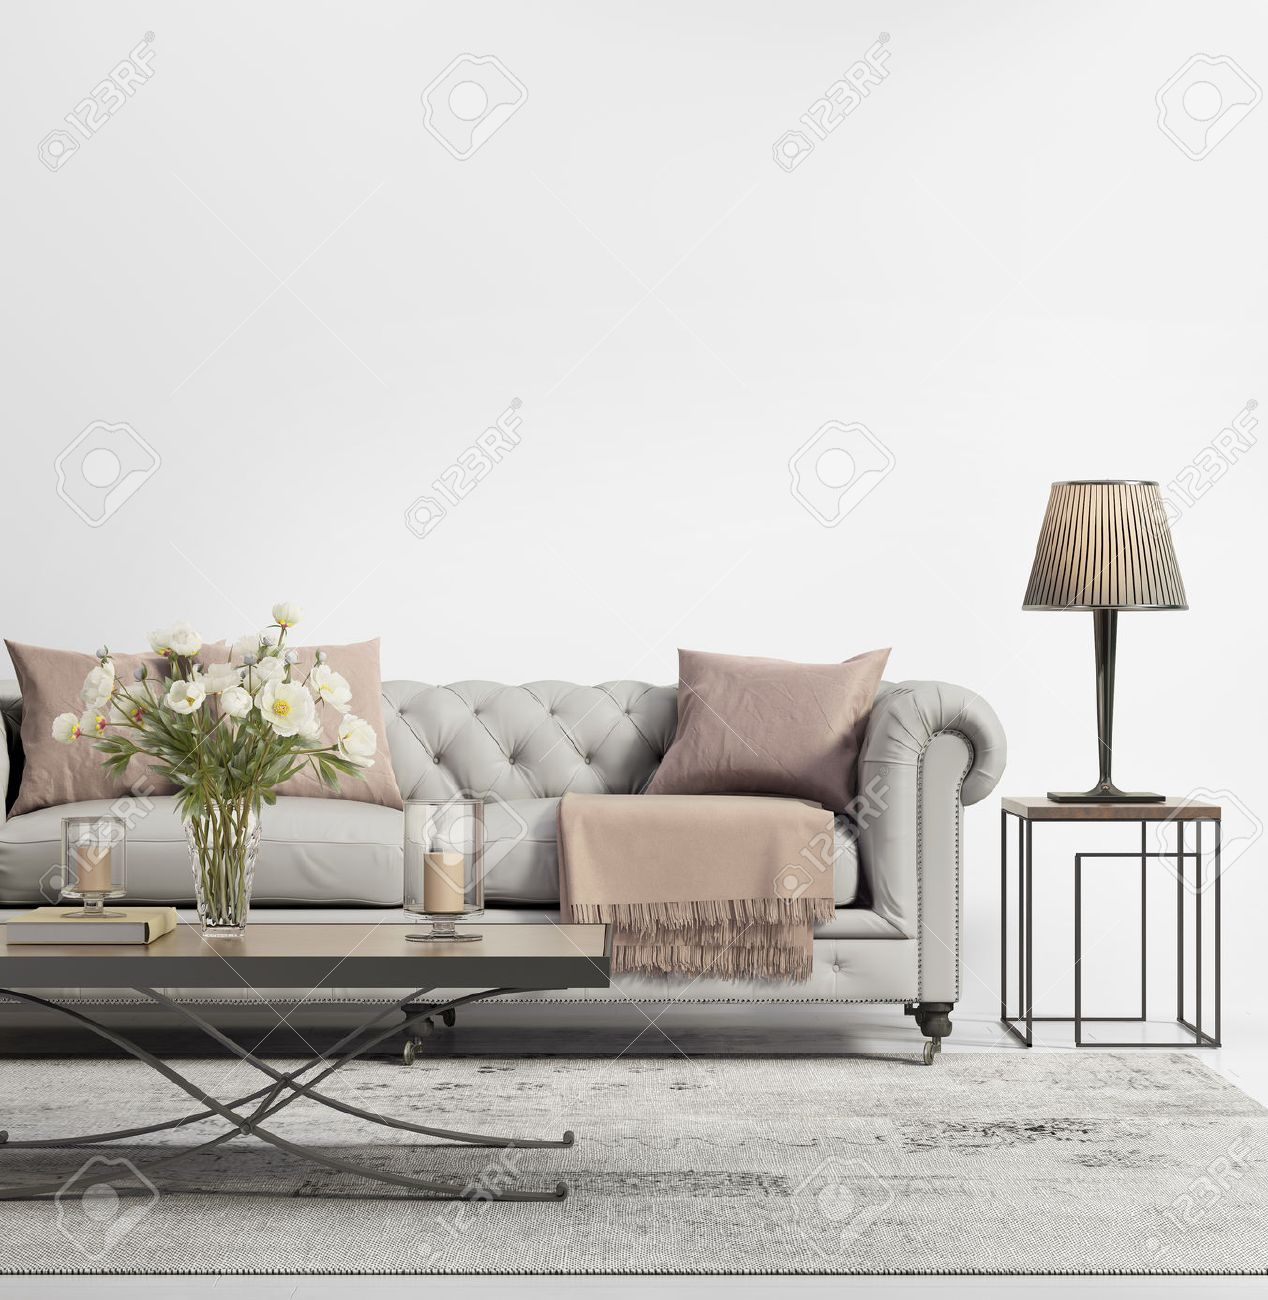 Contemporary Elegant Chic Living Room With Grey Tufted Sofa Stock Photo    47692410